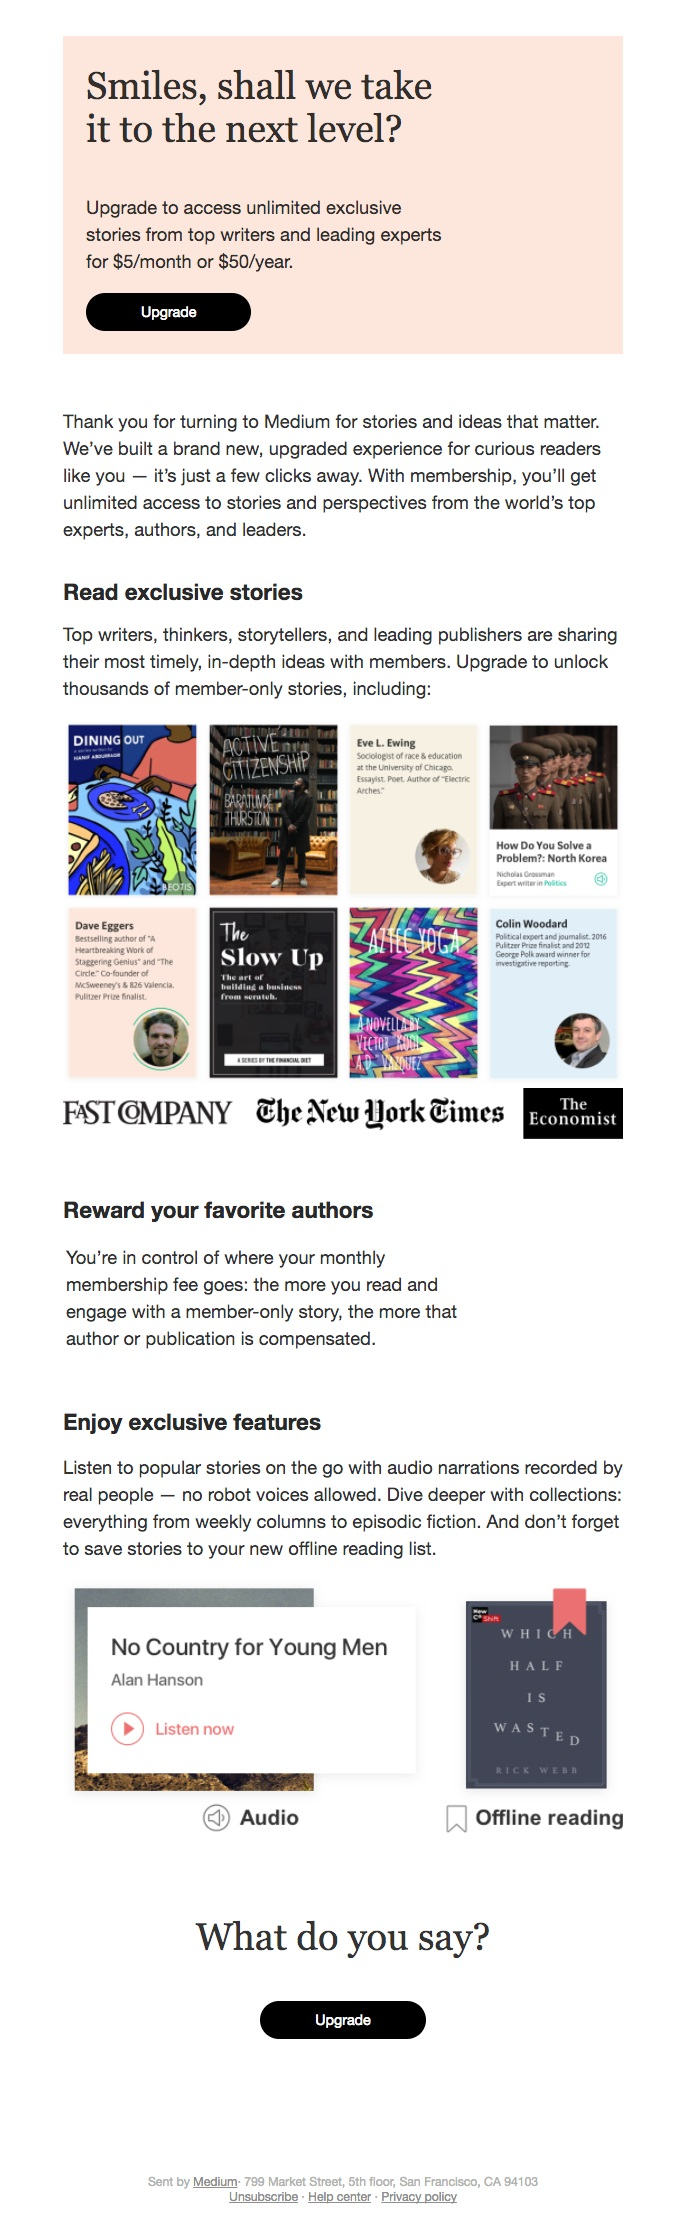 Fast Company offers an opportunity for subscribers to get even more involved.